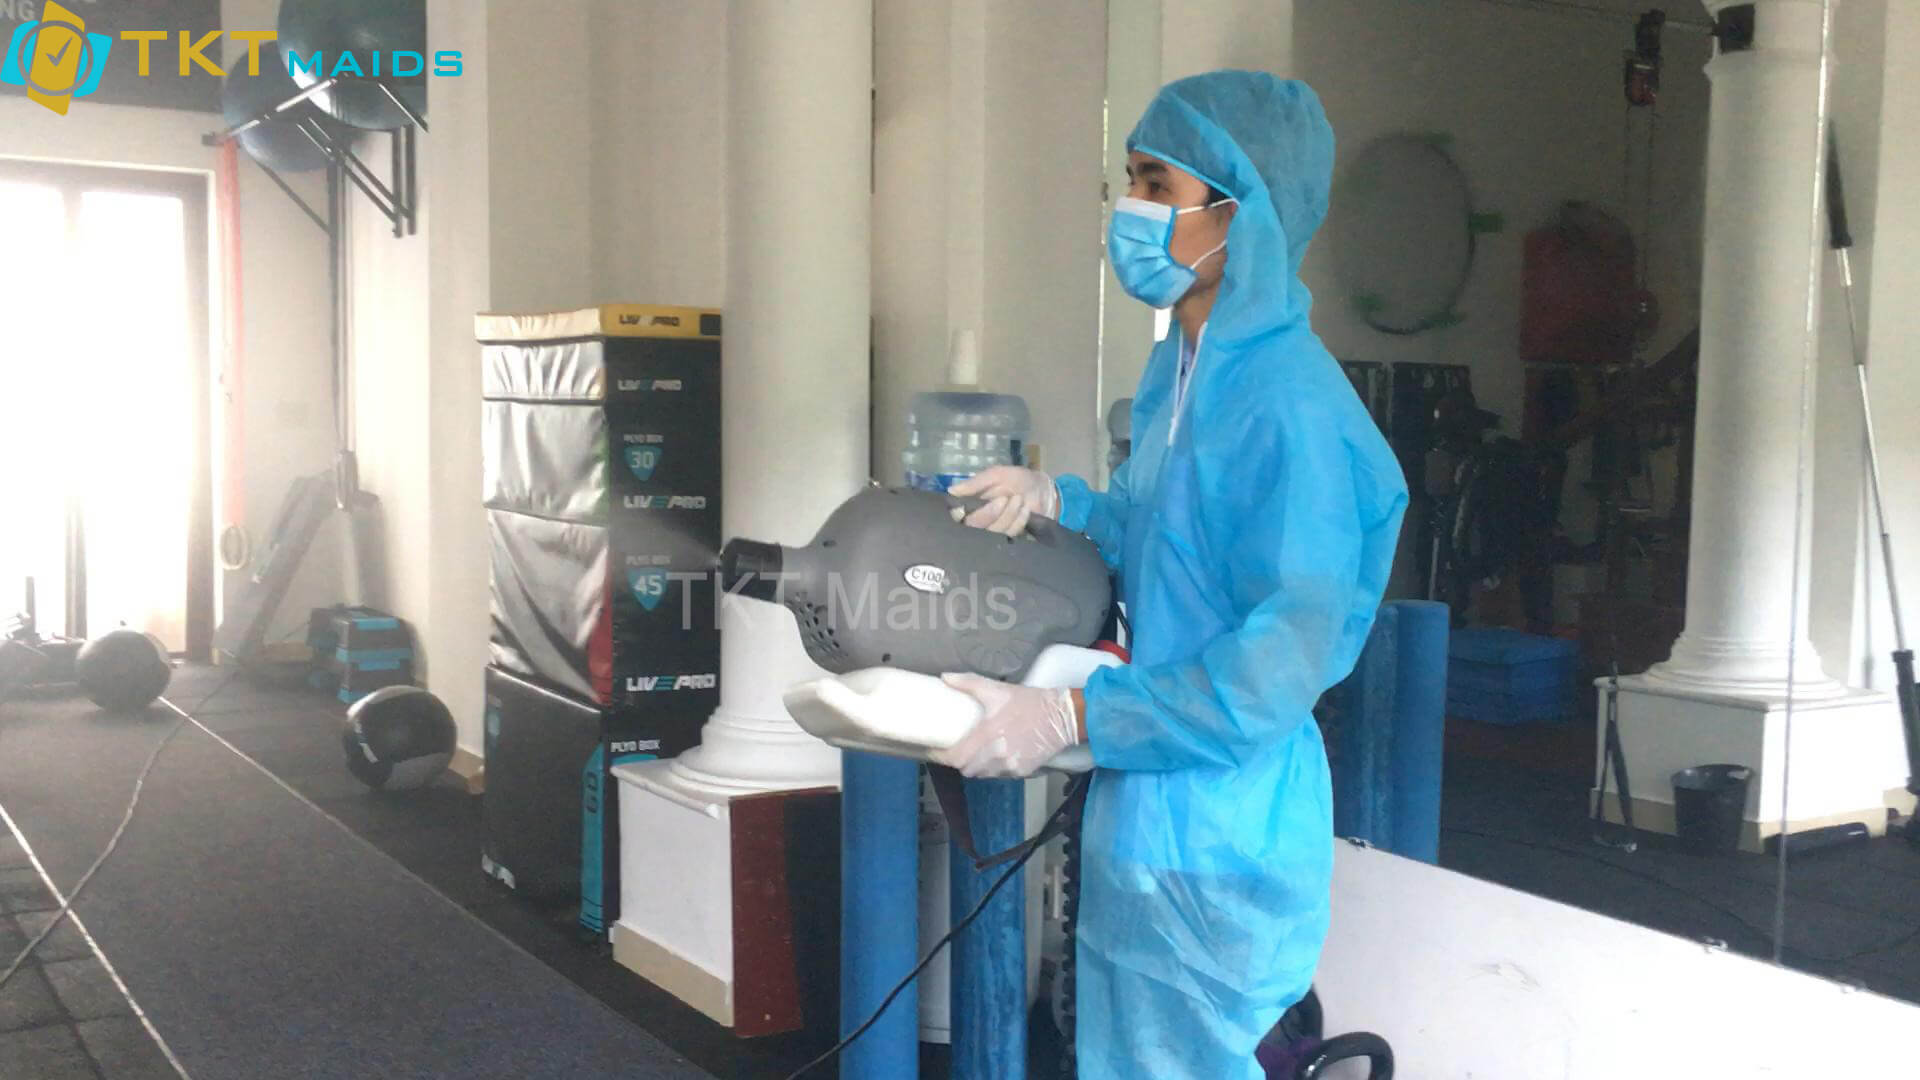 Photo: TKT Maids staff conduct disinfectant spray office for customers